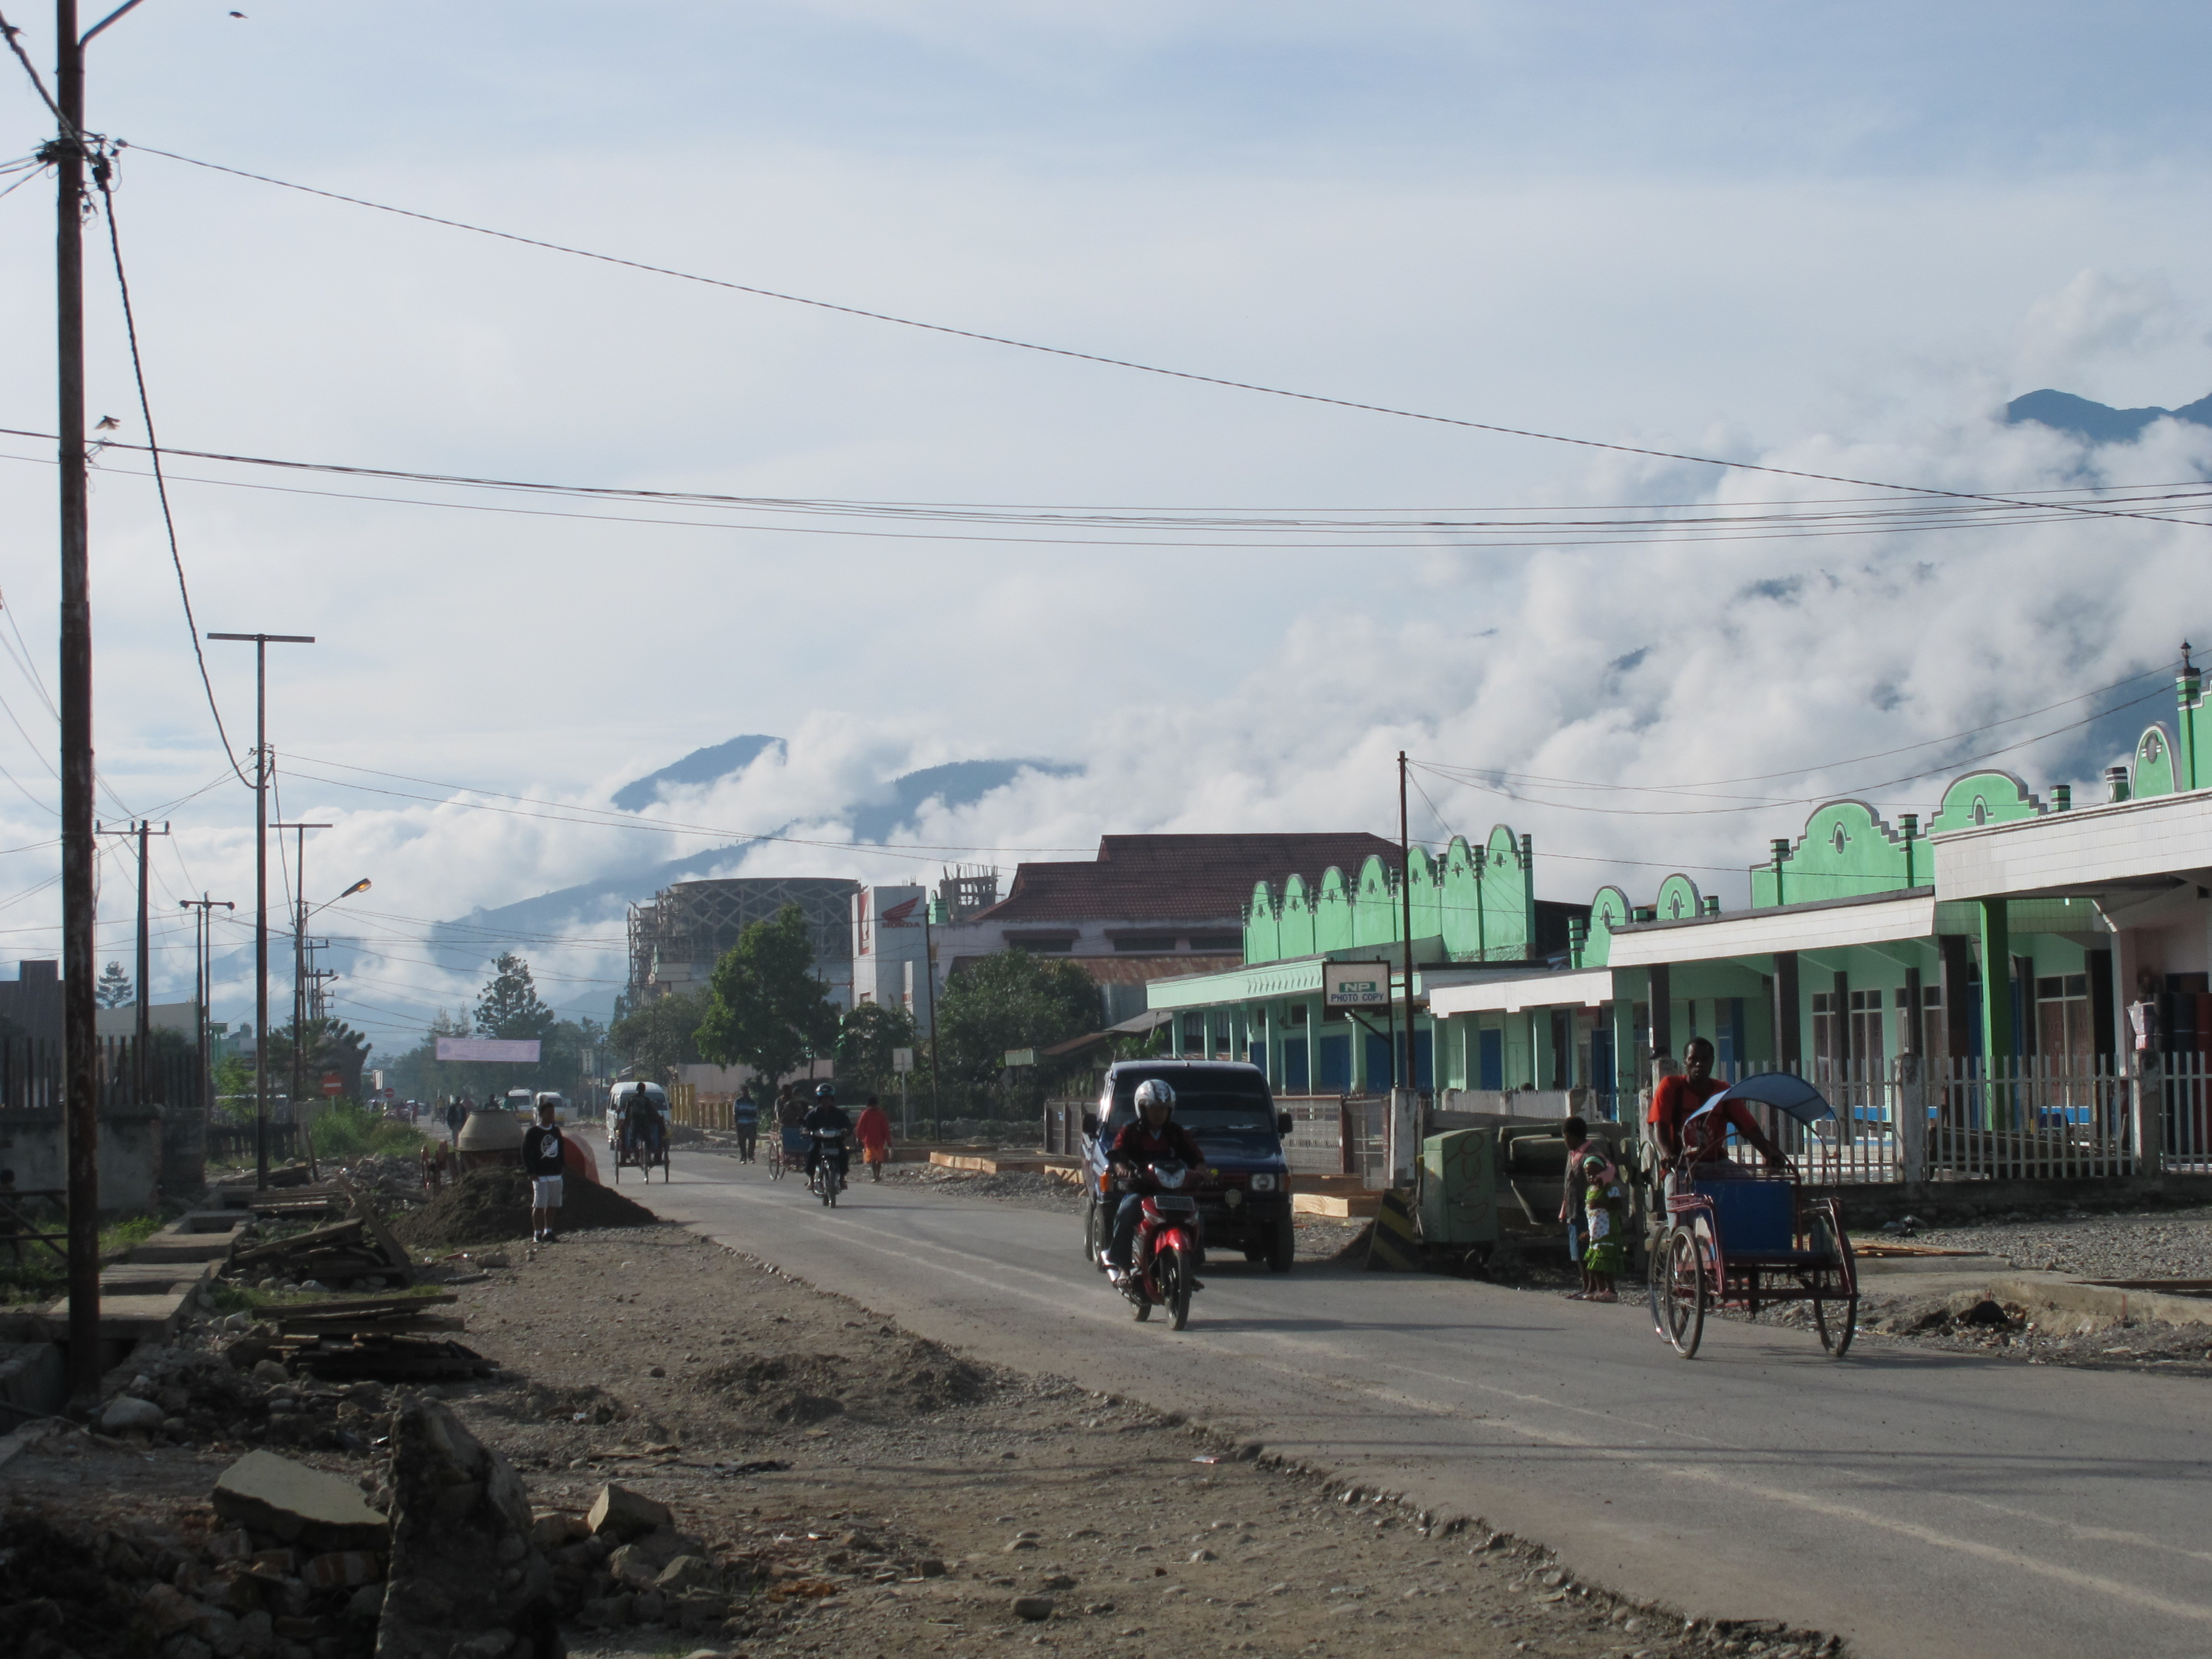 28 Nov 2010 Traffic on Jalan Trikora, Wamena